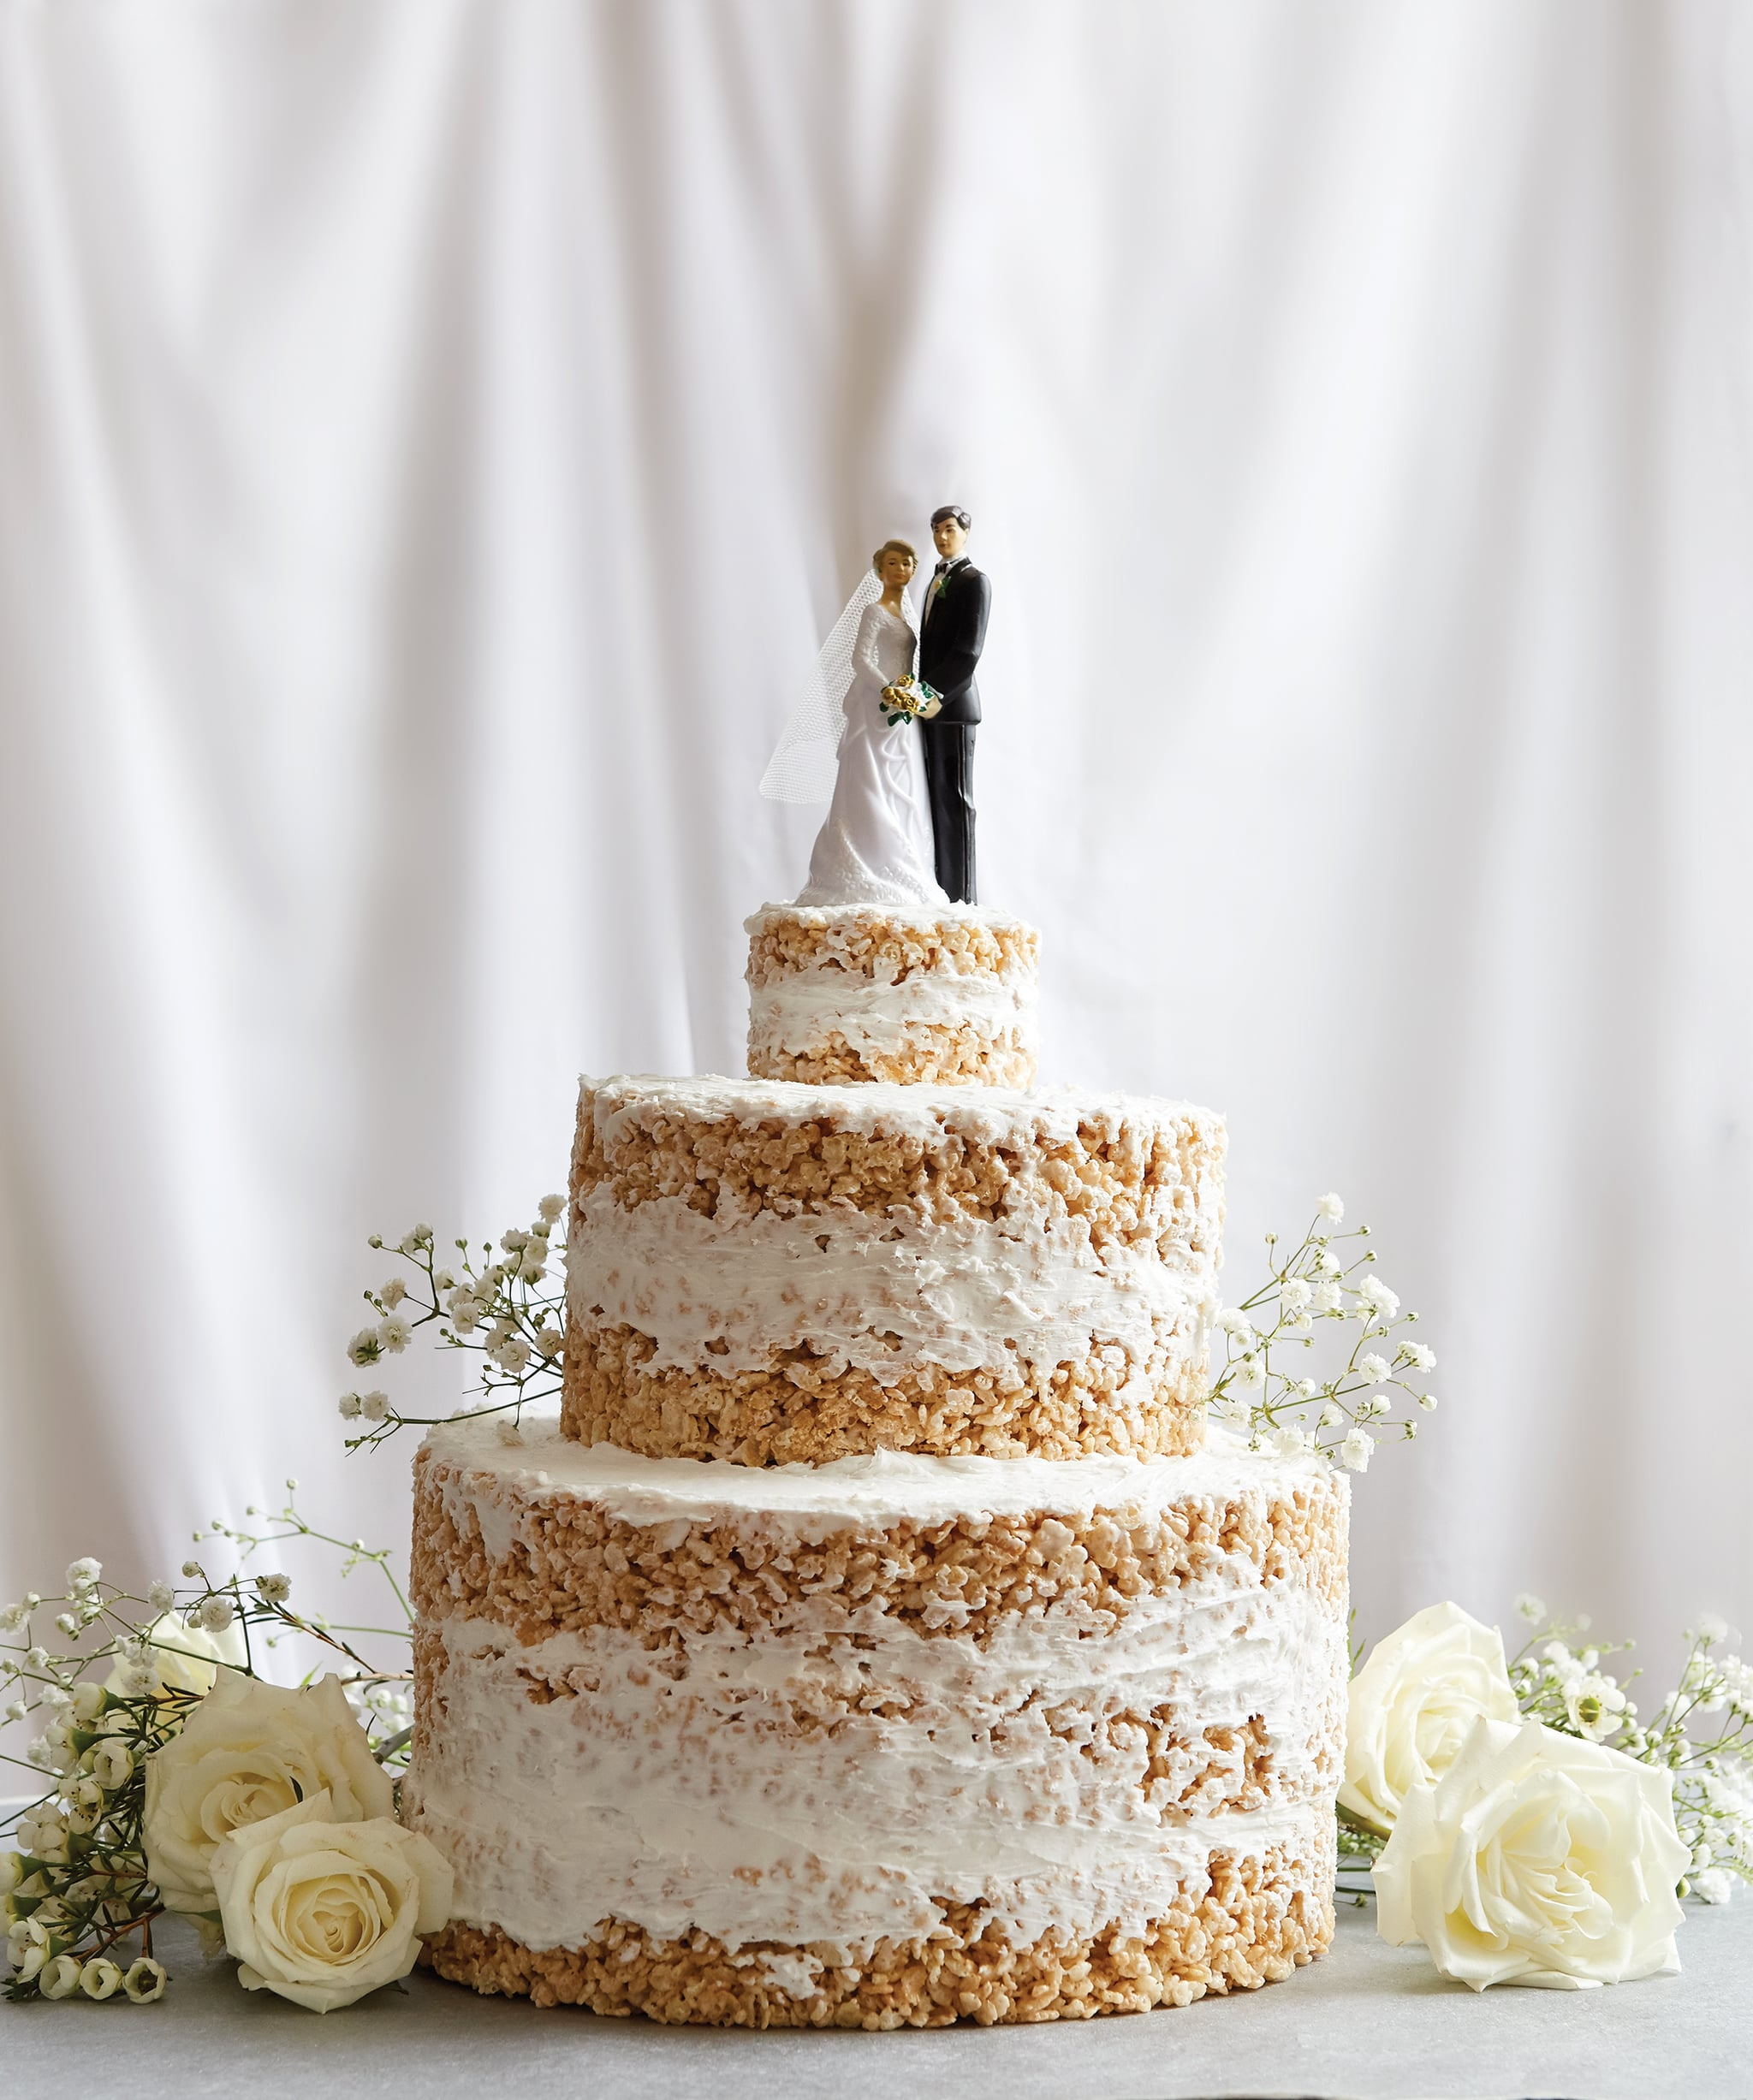 Wedding Cake Recipe.How To Make A Gorgeous Wedding Cake Entirely Of Rice Krispies Yes Really